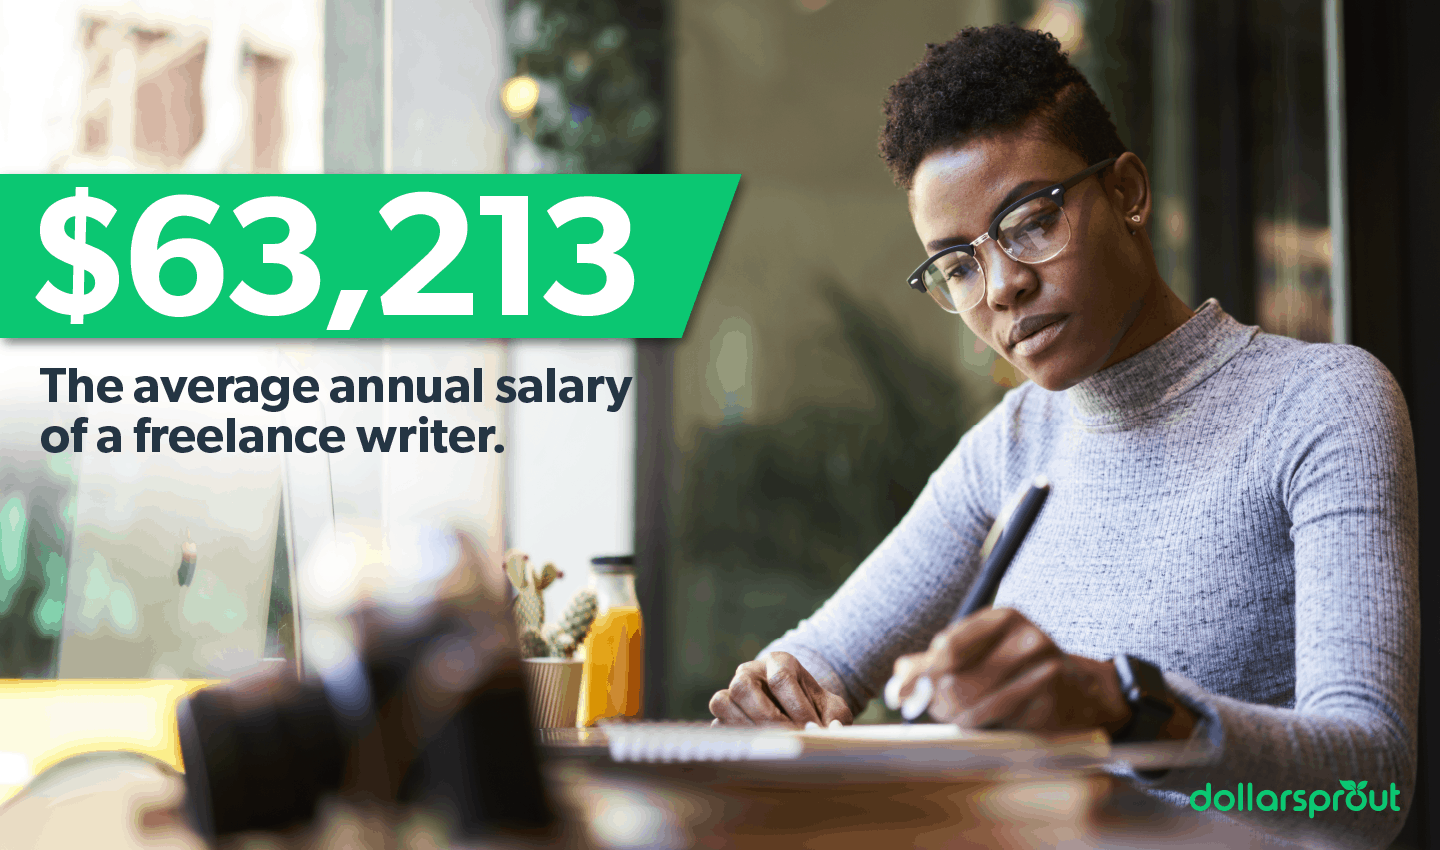 The average annual salary of a freelance writer